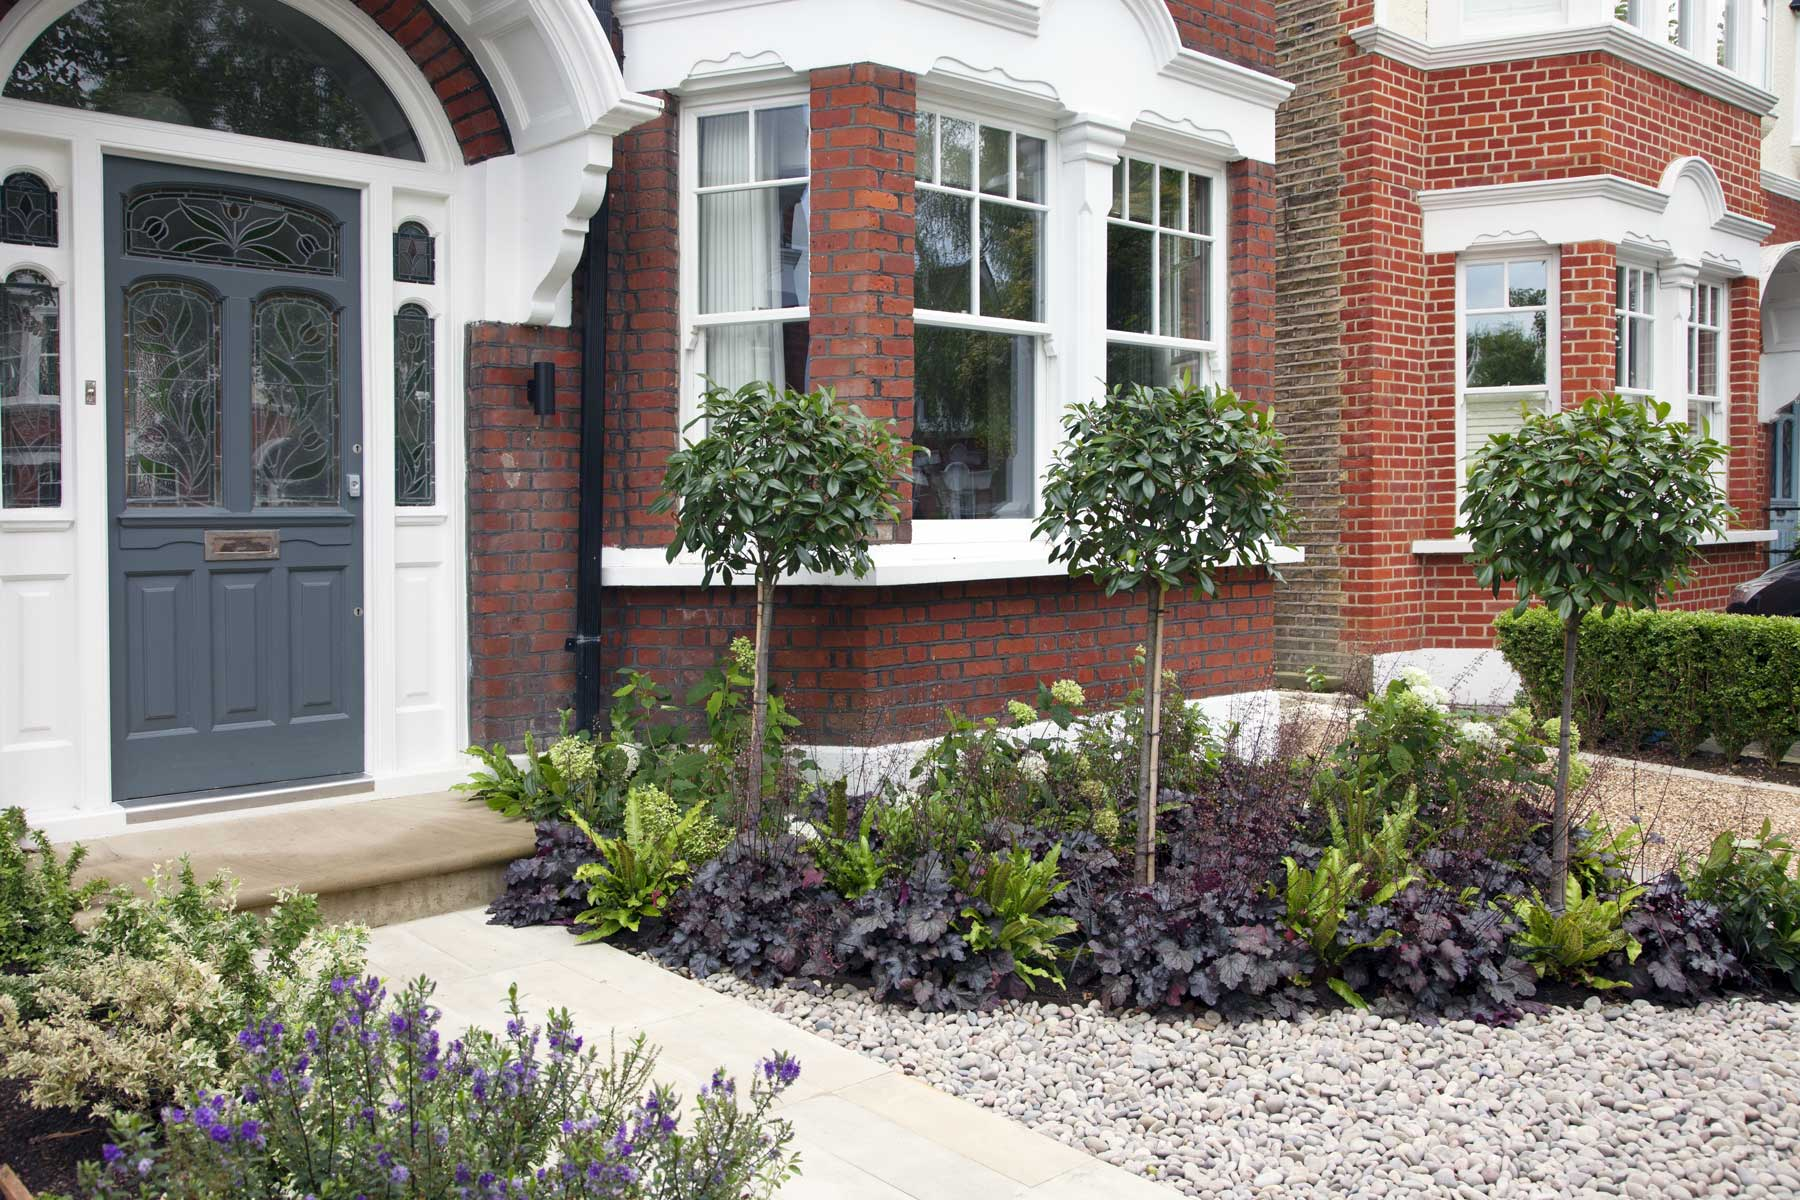 Front garden design in london by kate eyre for Front garden design ideas uk